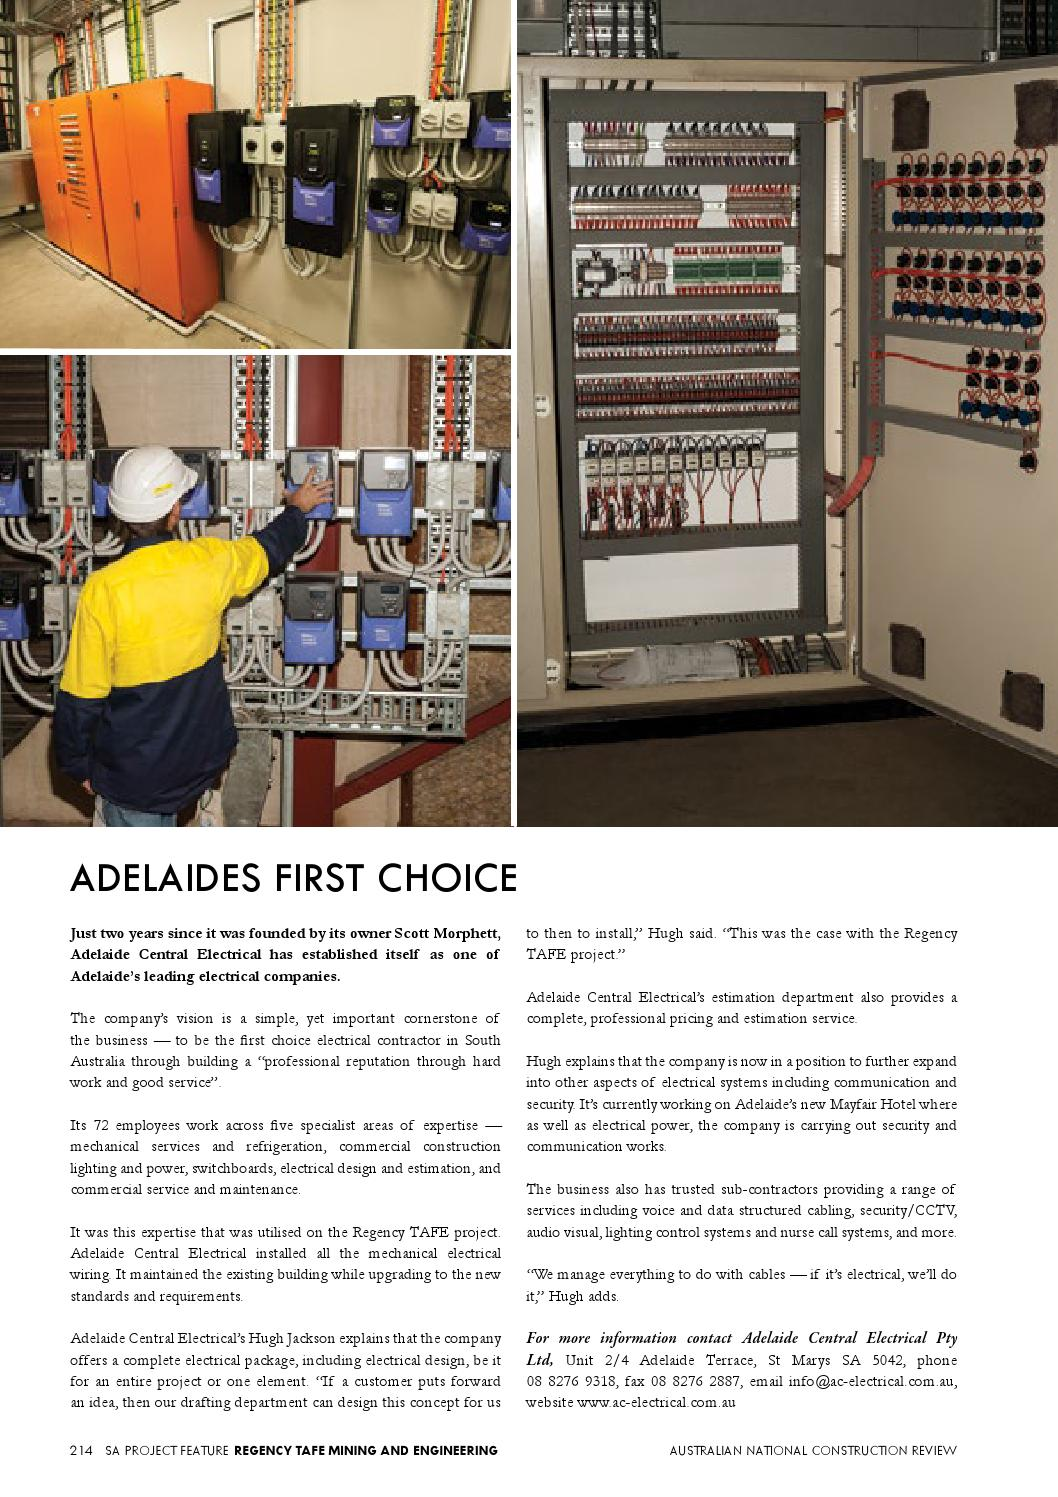 Australian National Construction Review By Trade Media Group Ptd Ltd With An Understanding Of This First Requirement Electric Issuu